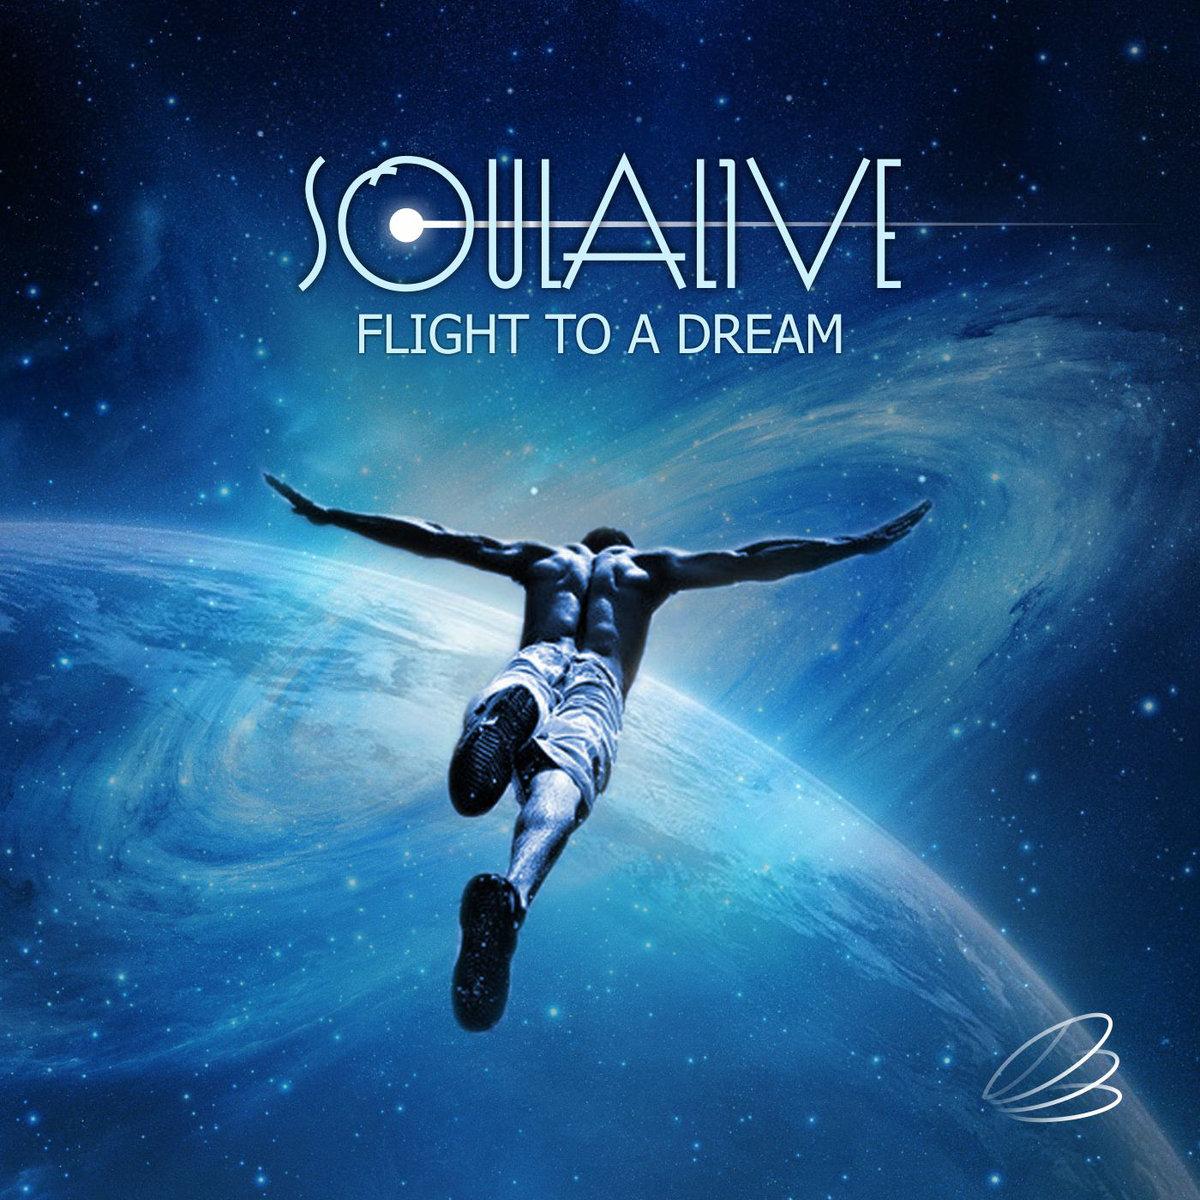 Soulalive - Flight To A Dream